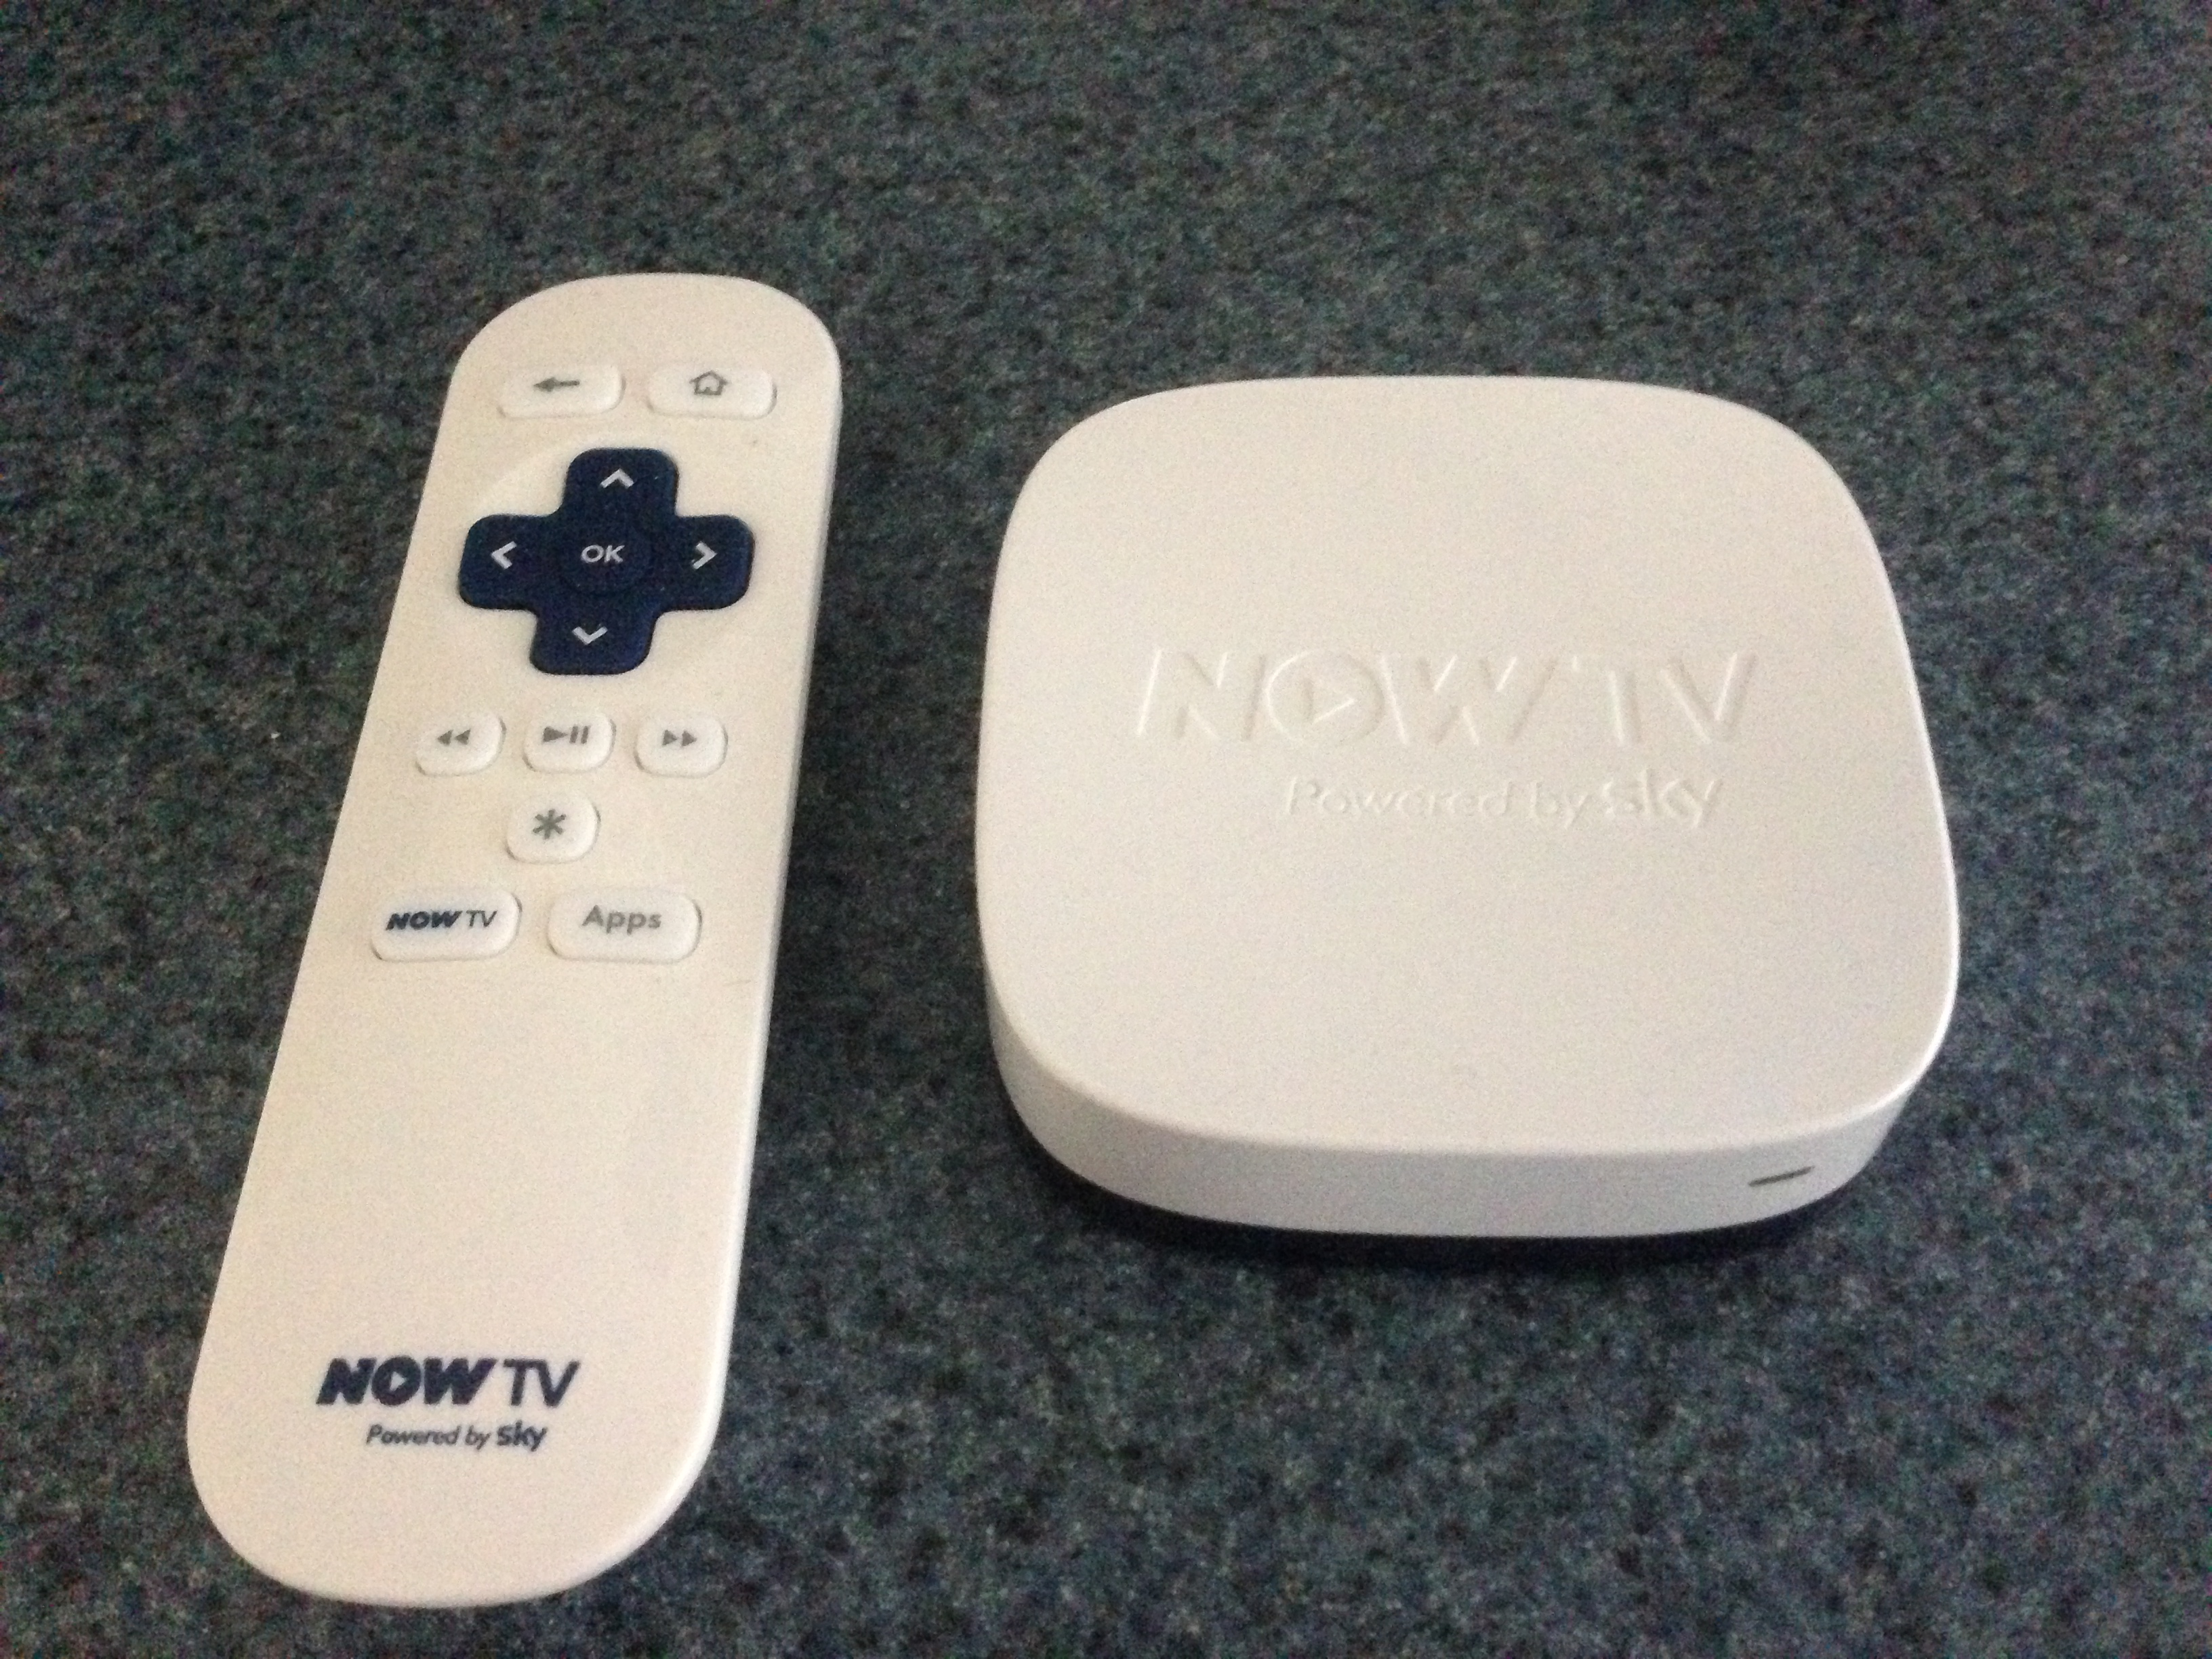 Step by Step Guide to installing Plex on a NowTV Box-nowtv-box.jpg